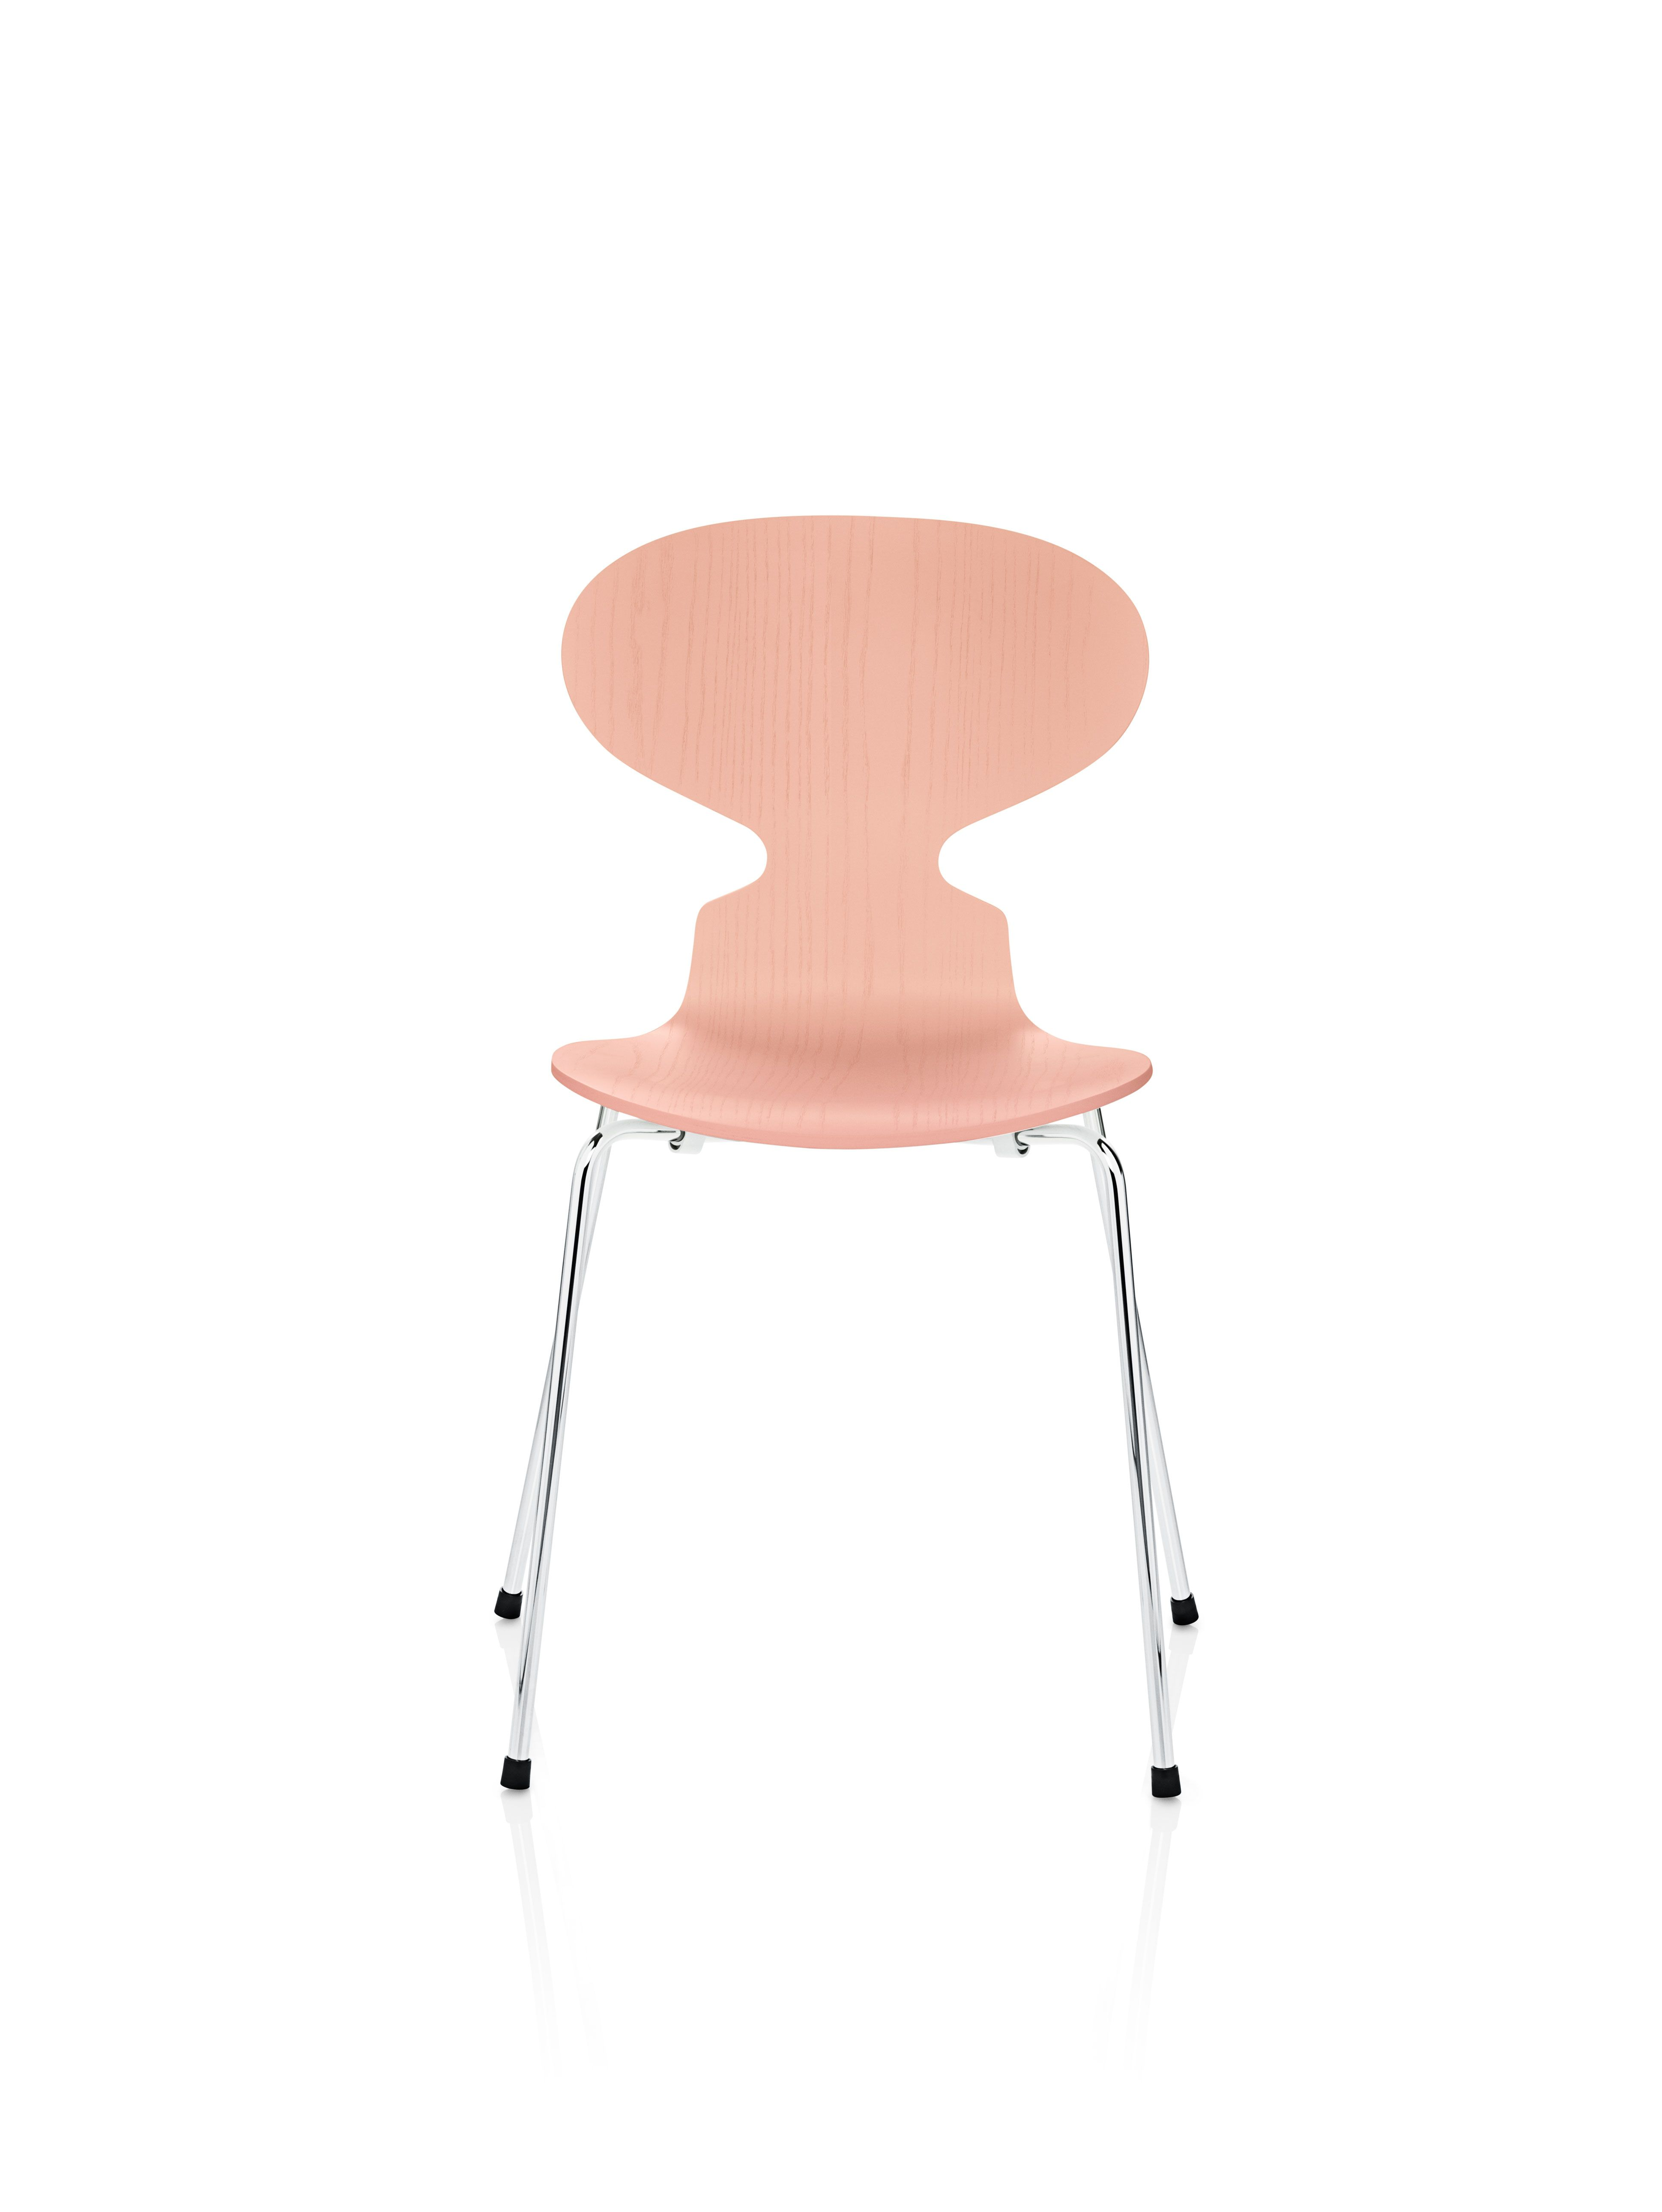 Ant Chair Designed By Arne Jacobsen In 1952, In The